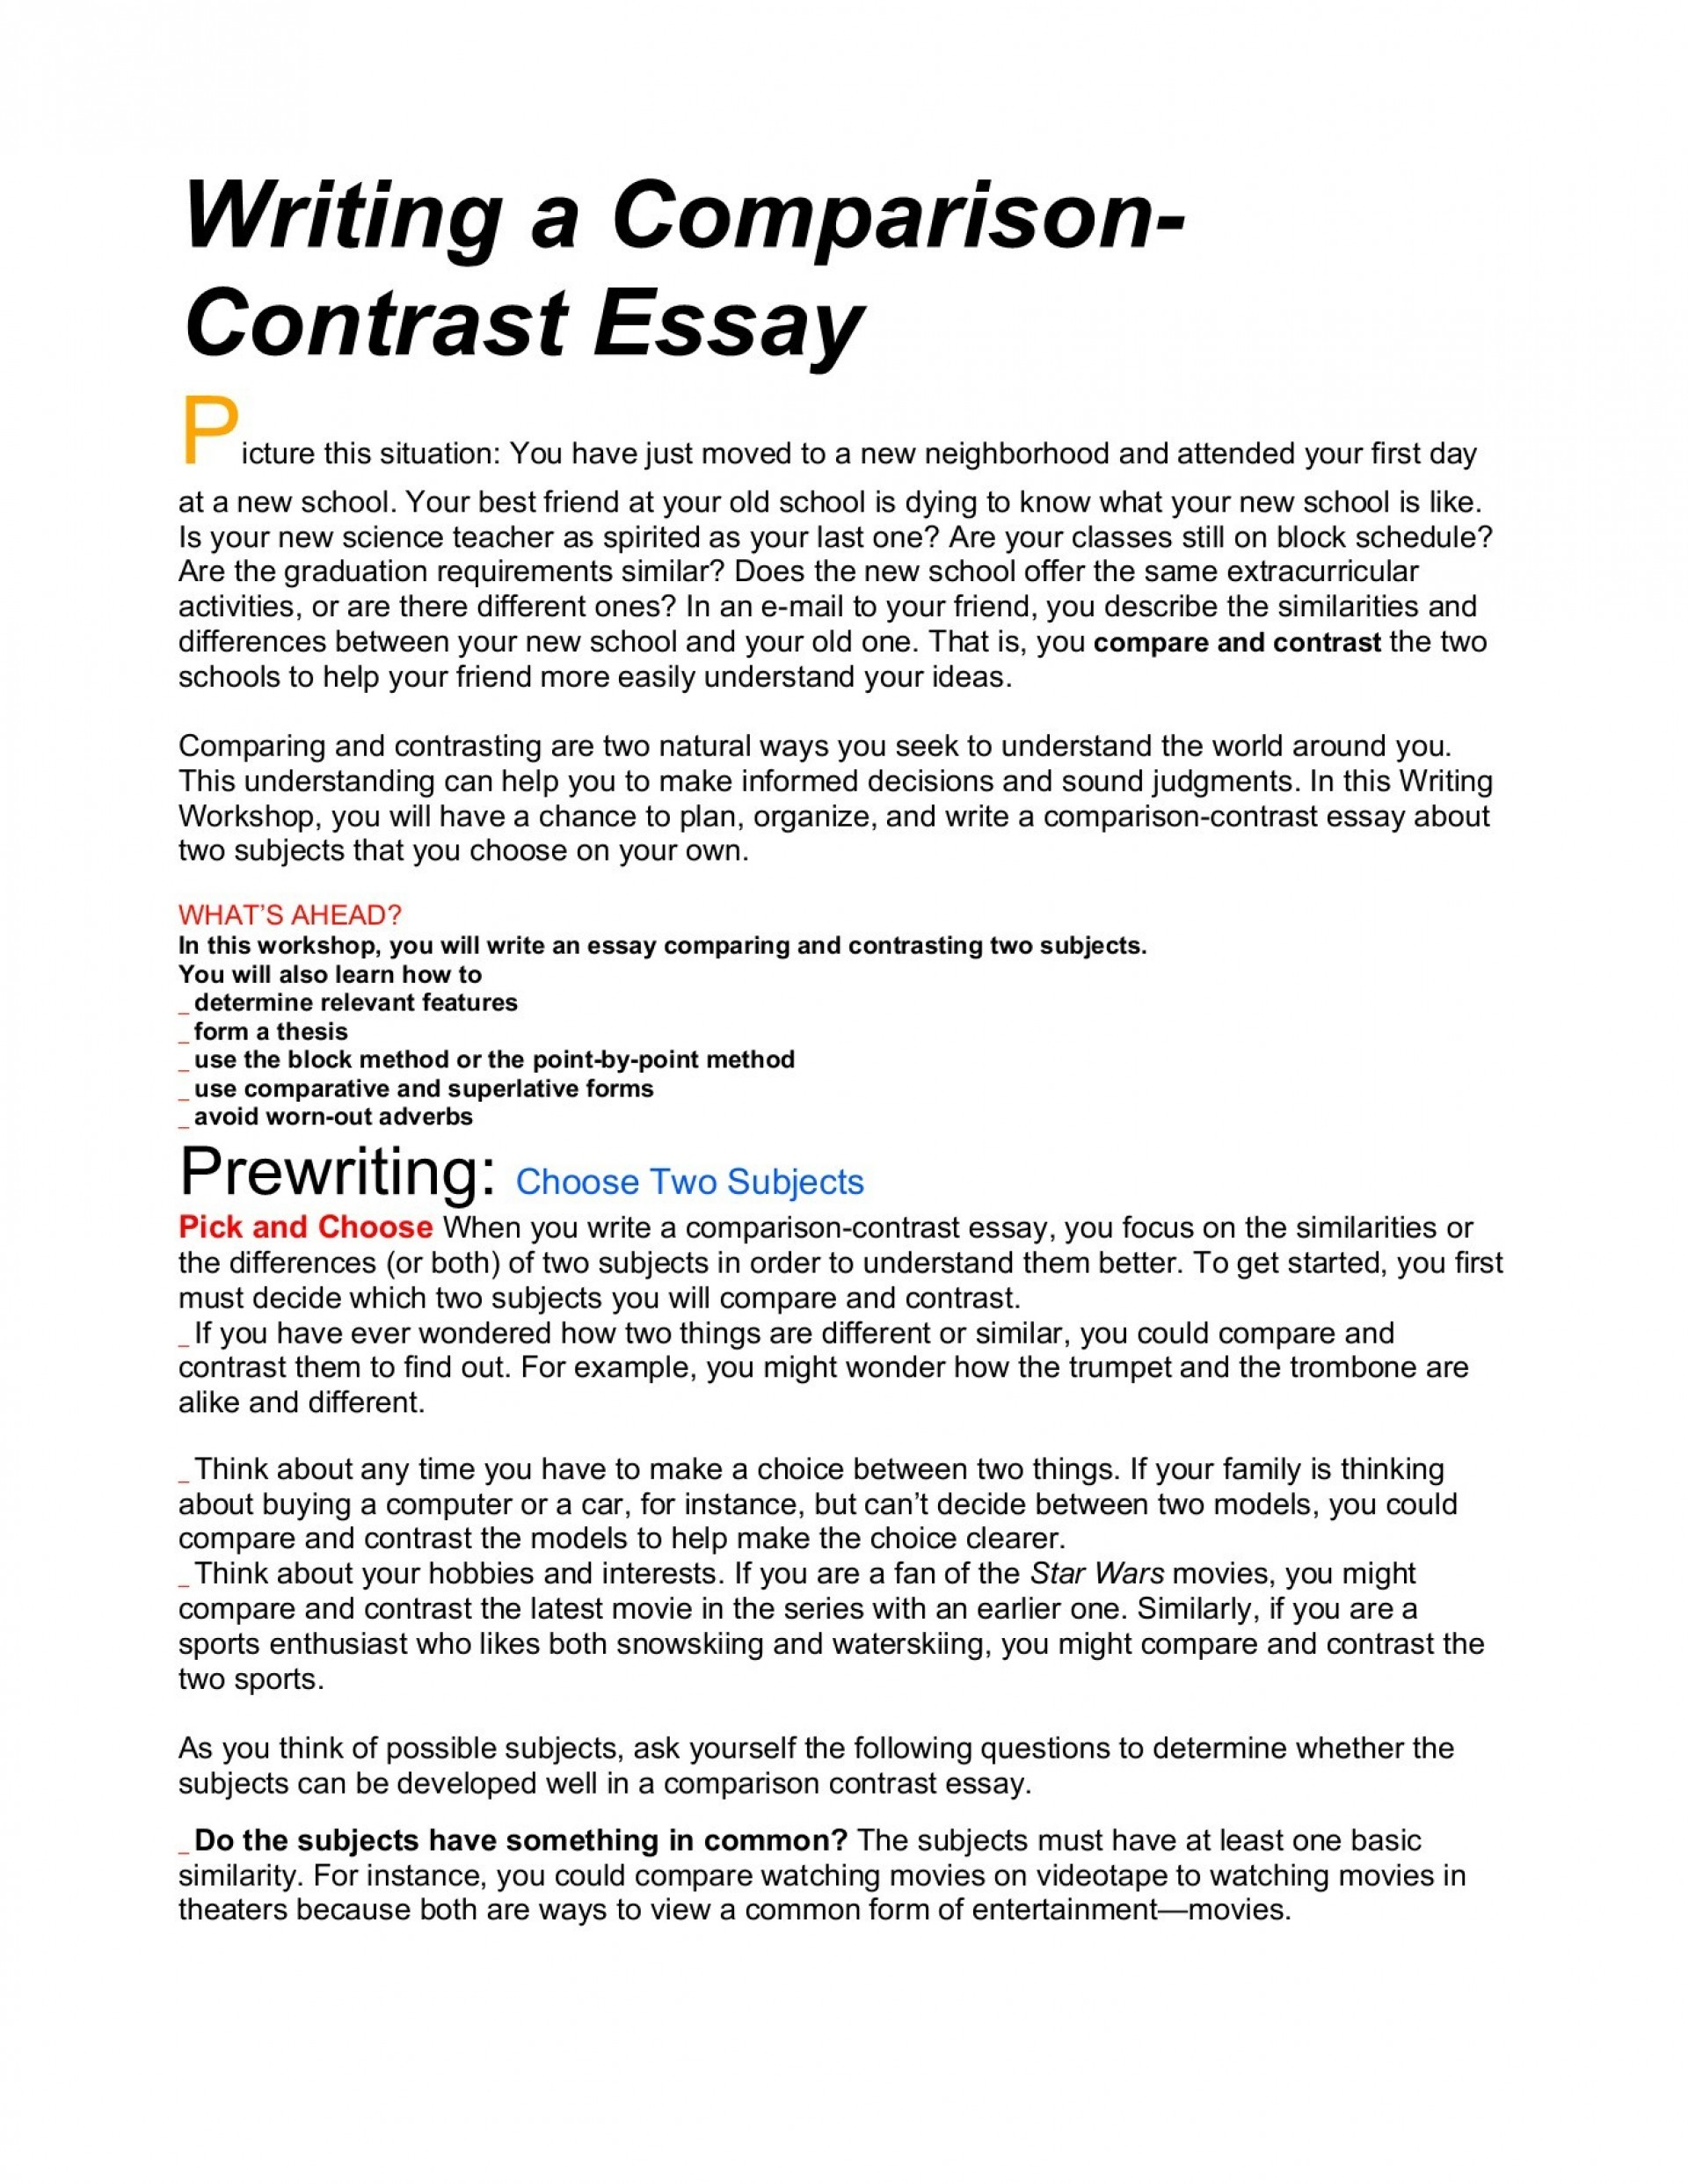 007 Compare Contrast Essay Fascinating Topics And Graphic Organizer Julius Caesar Answers High School 1920